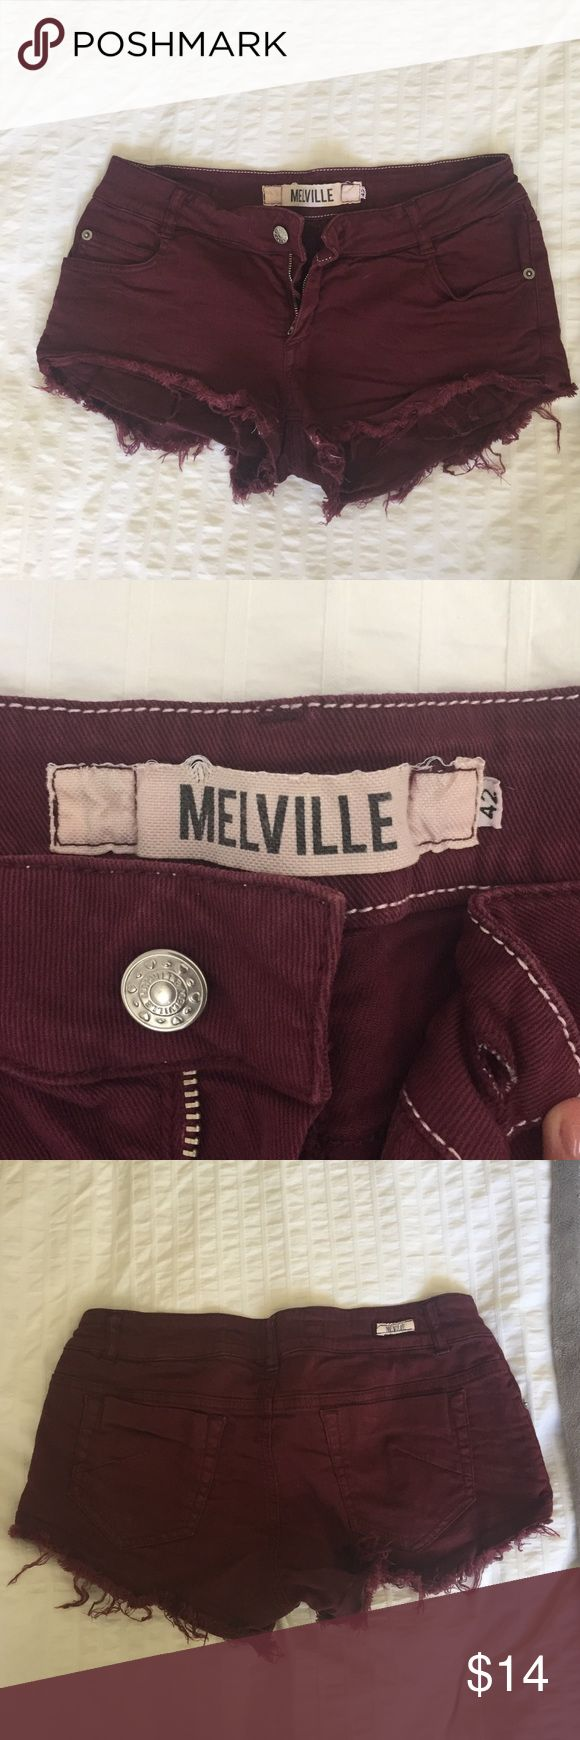 Brandy Melville Burgandy Cutoff Shorts Really short cutoff burgandy/ wine color shorts from Brandy Melville. Says size 42 (fits like a 0/2). Really cute for teens. Fashionable for fall. Brandy Melville Shorts Jean Shorts